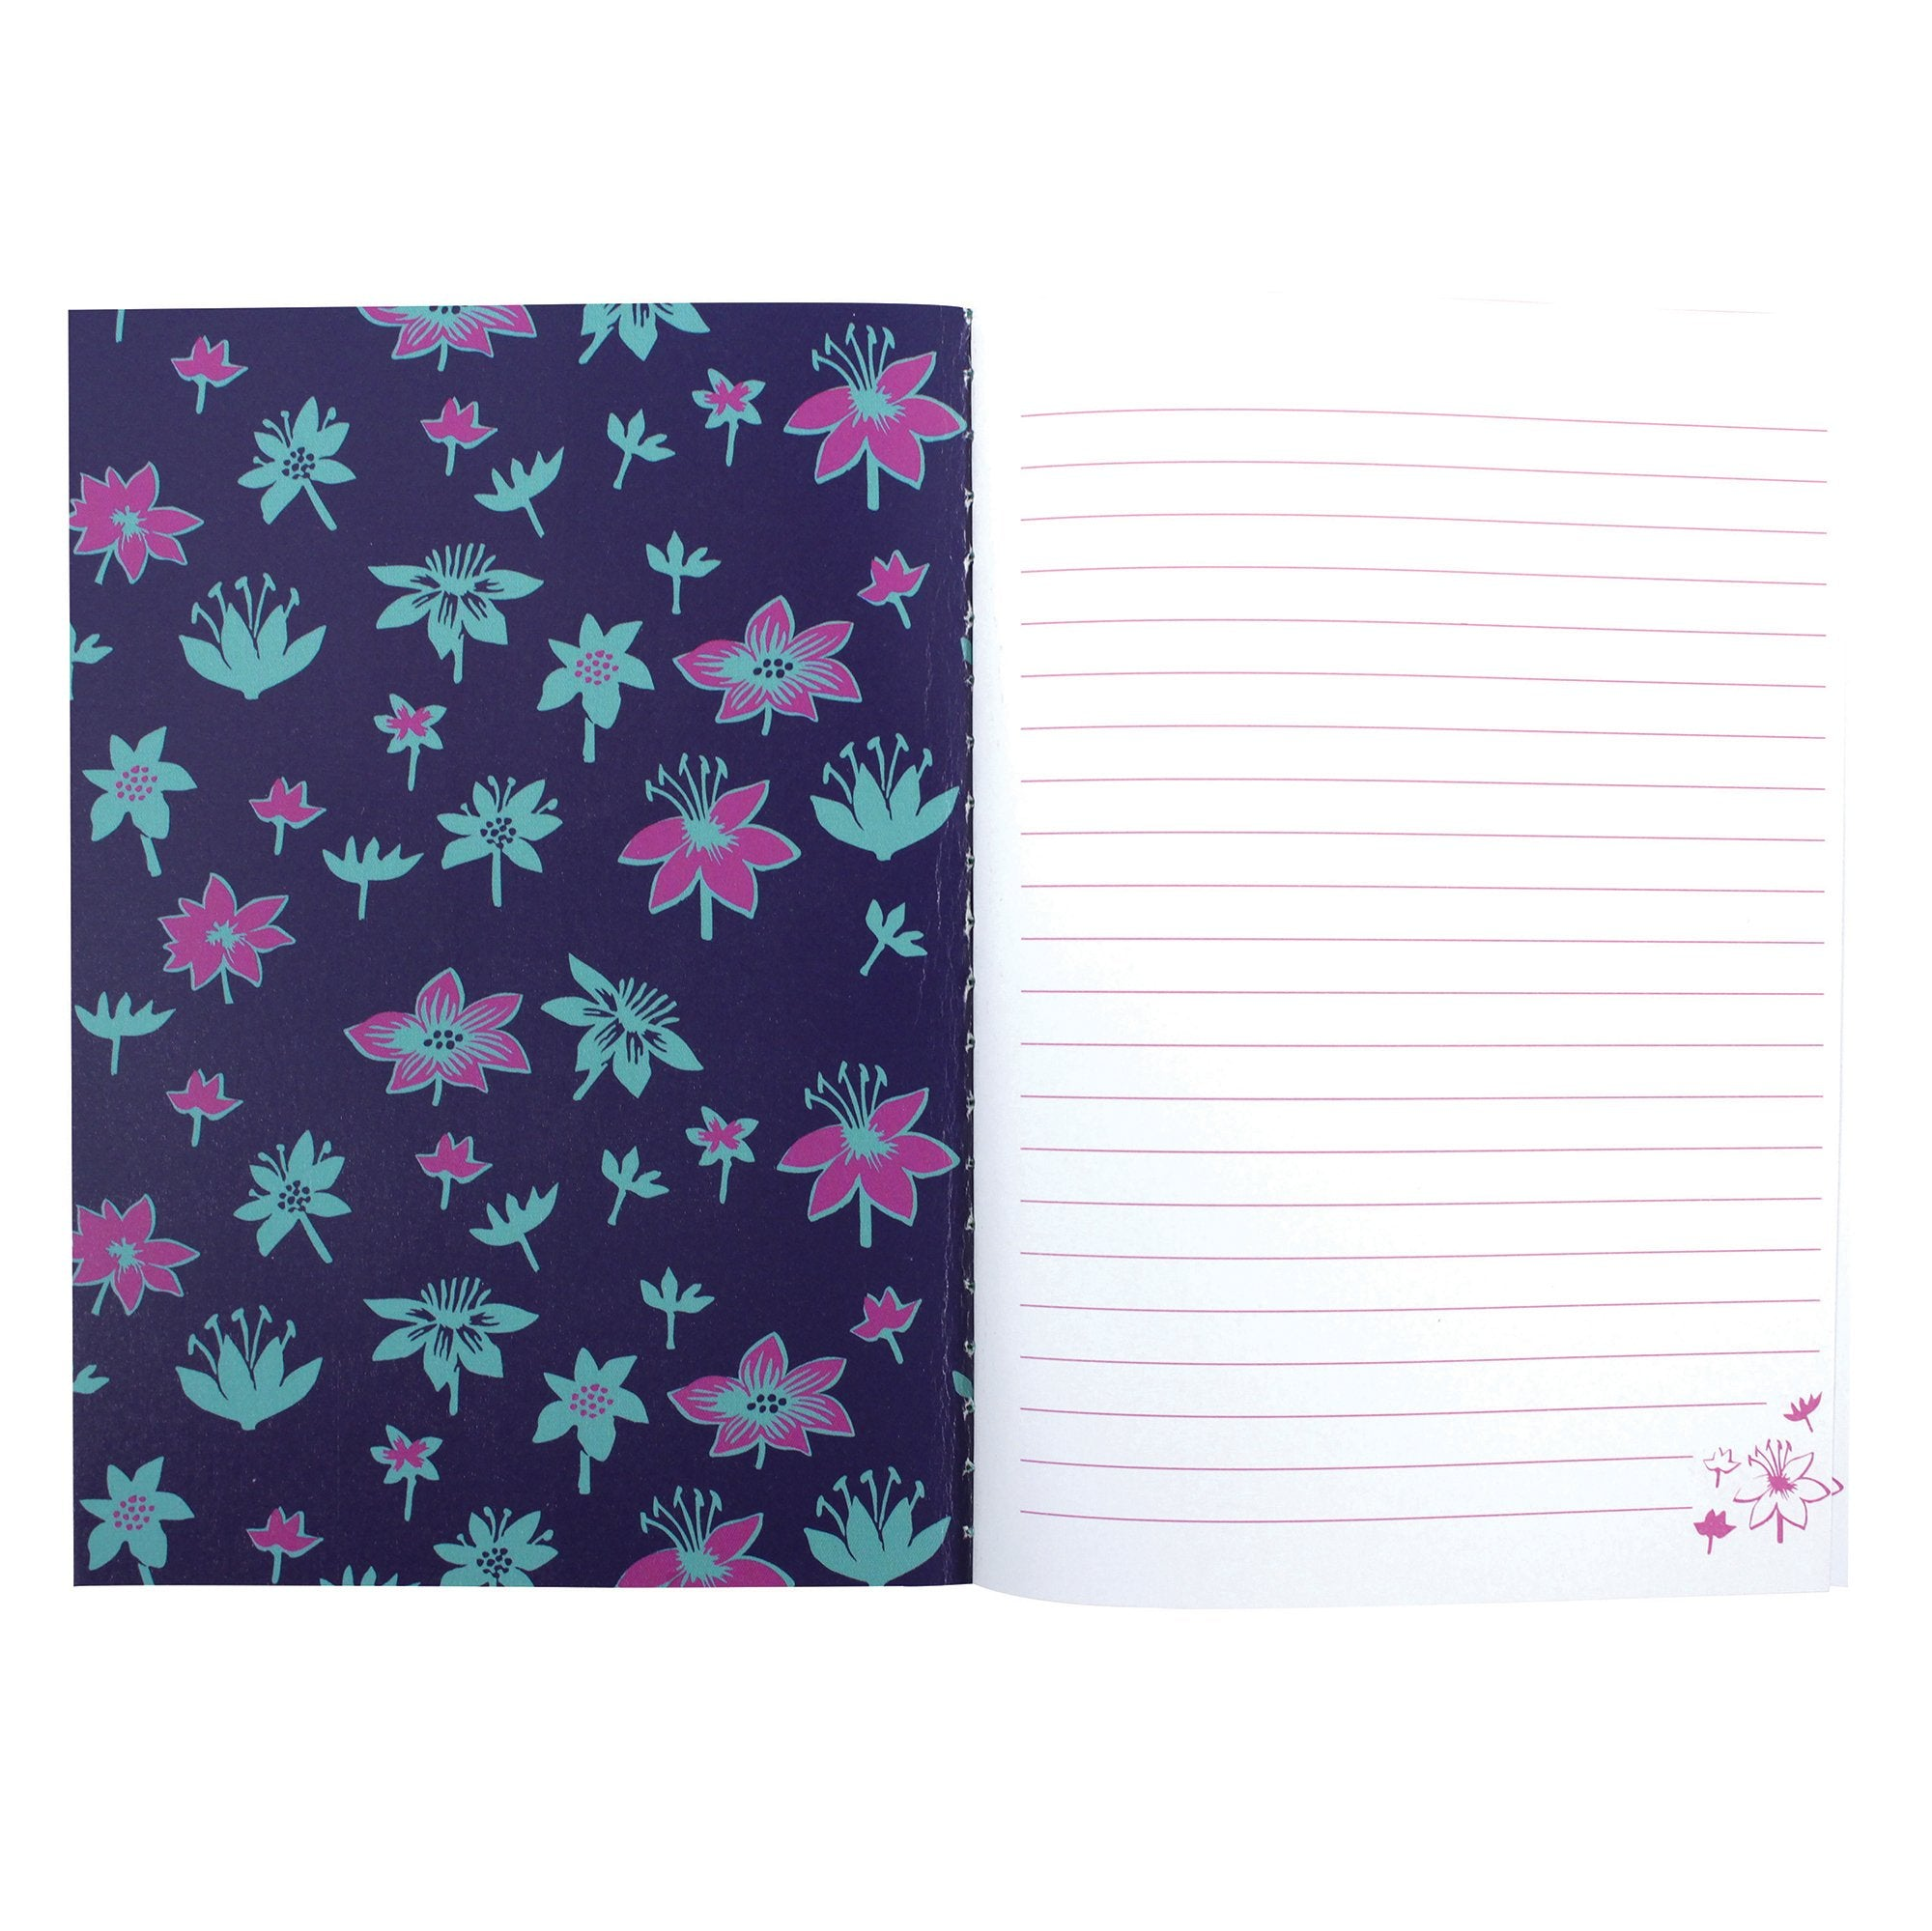 Moomin A6 Notebook - Moomin Papa - Half Moon Bay US